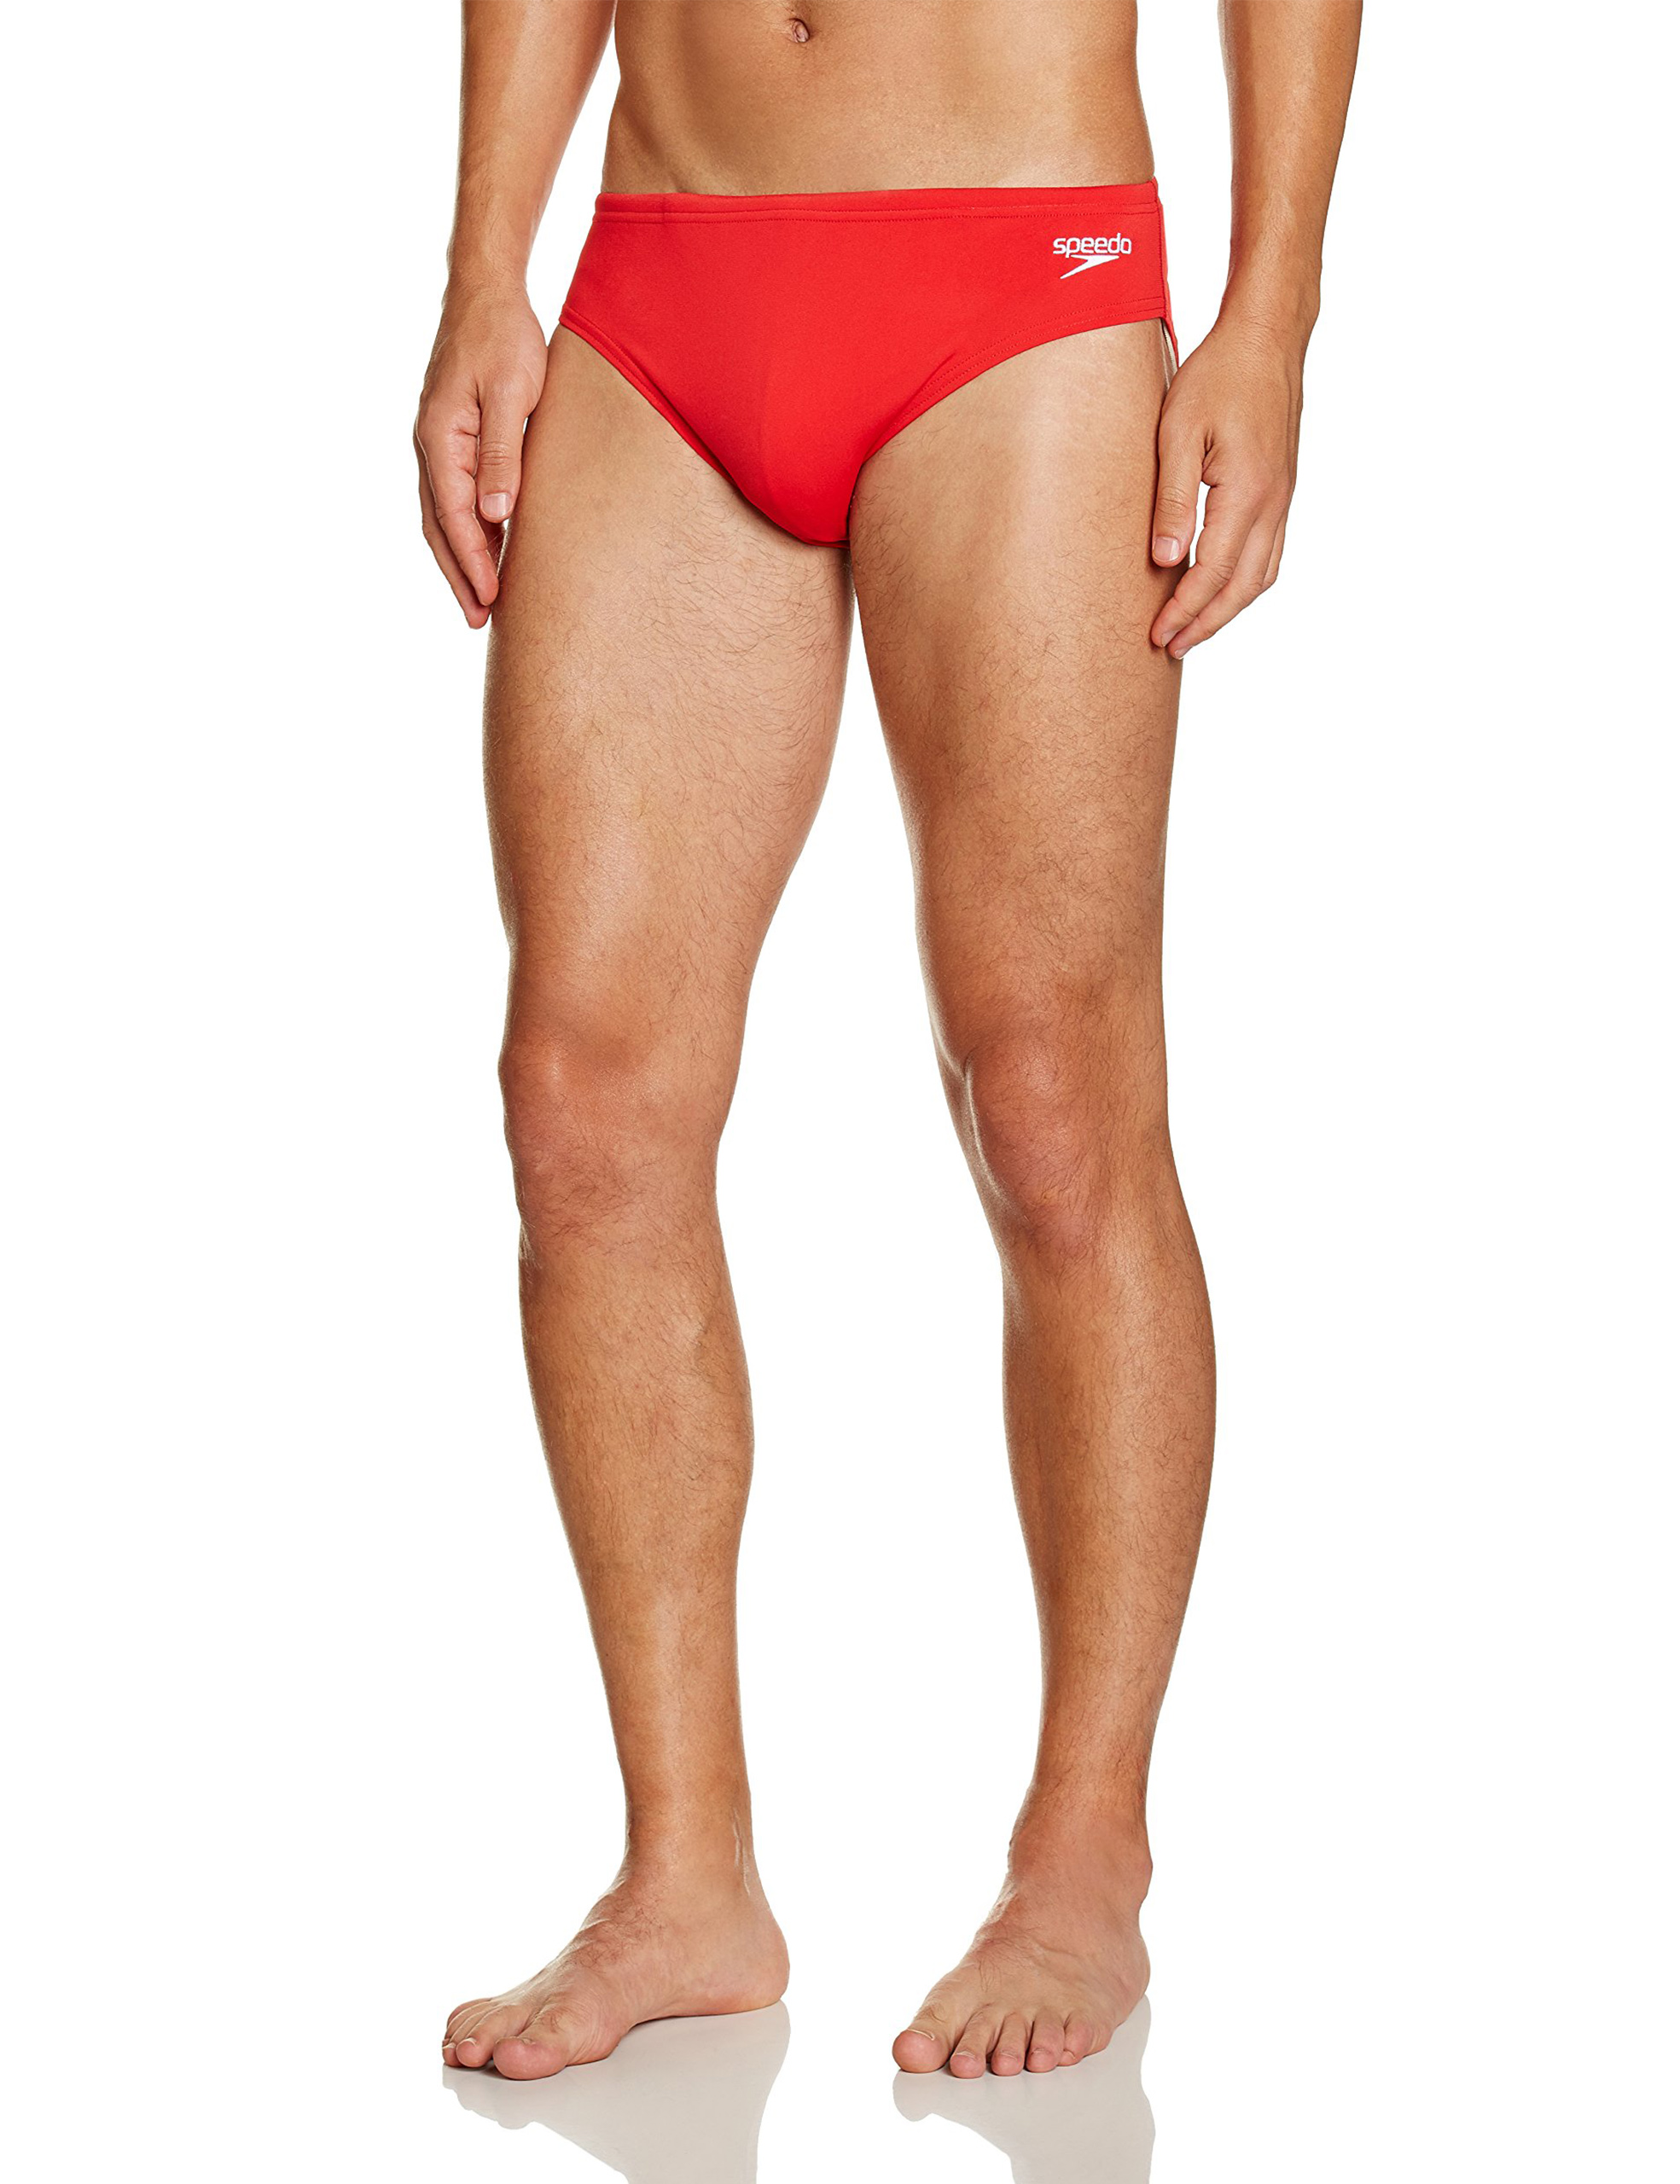 ec5f7fe6ba SHOP MEN'S SWIMWEAR. SHORTS & TRUNKS. Men's Shorts & Trunks · BRIEFS. Men's  Briefs · JAMMERS